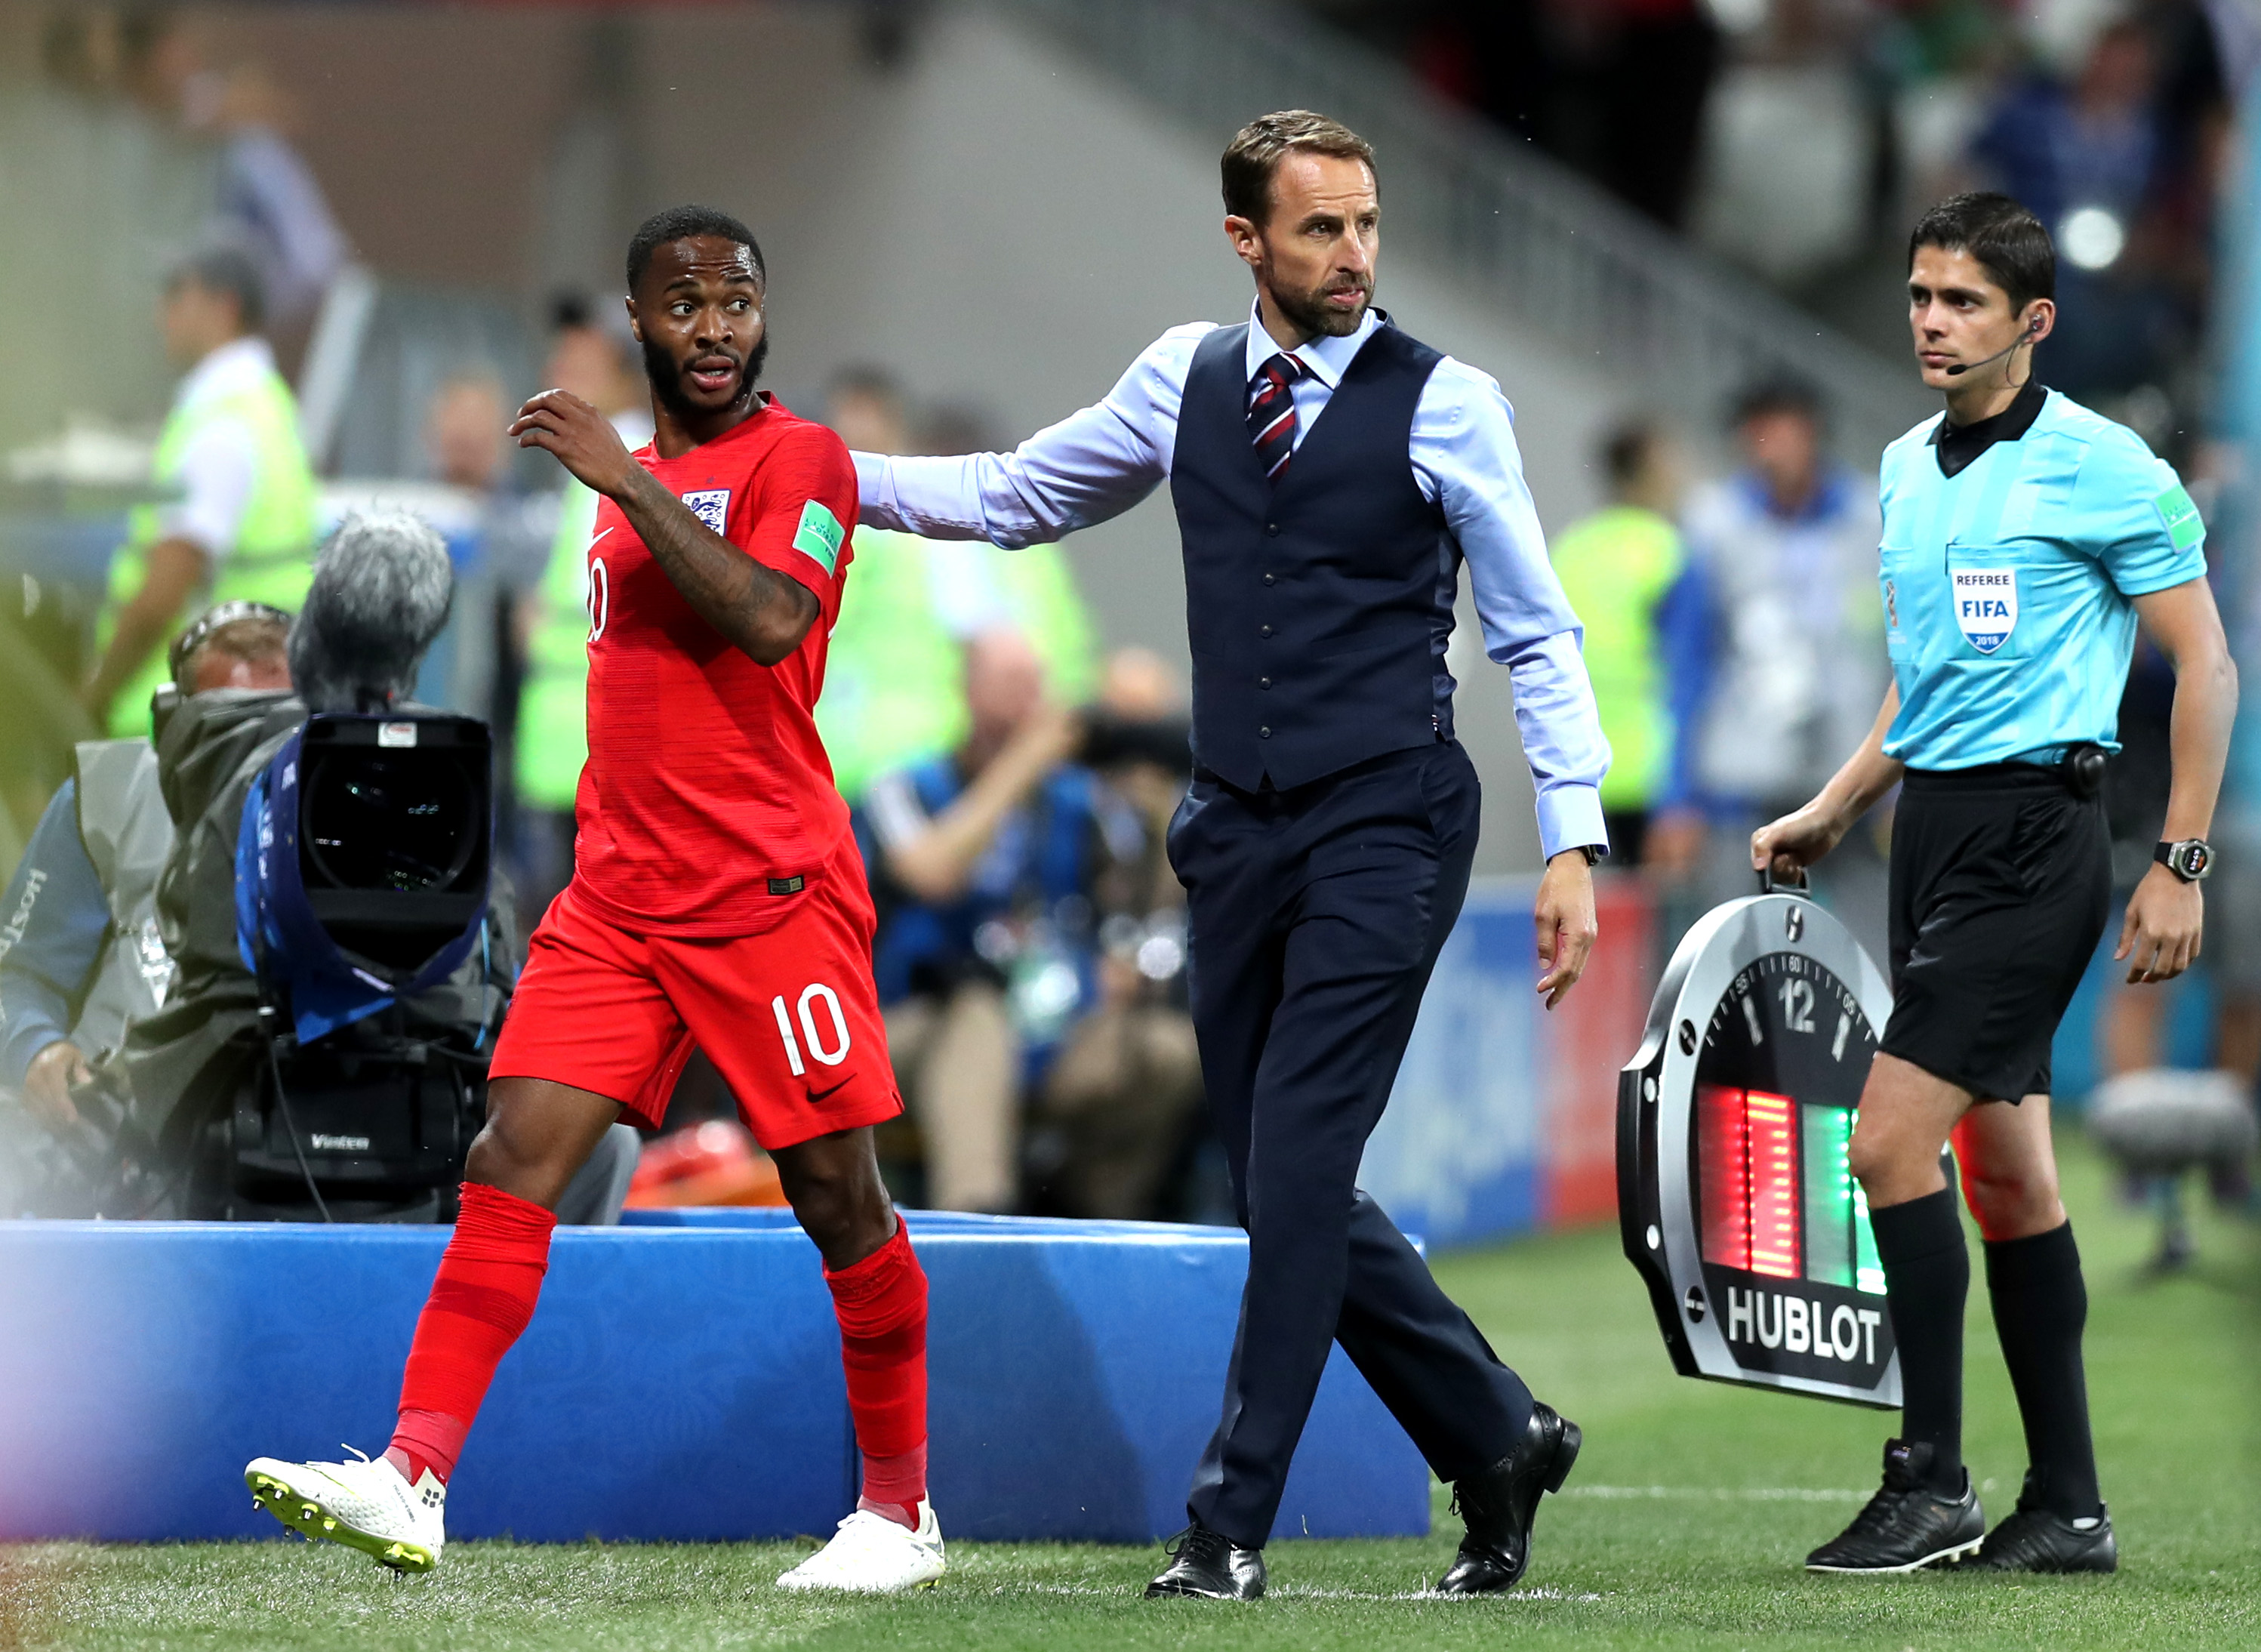 Raheem Sterling Dele Alli out of England vs. Panama